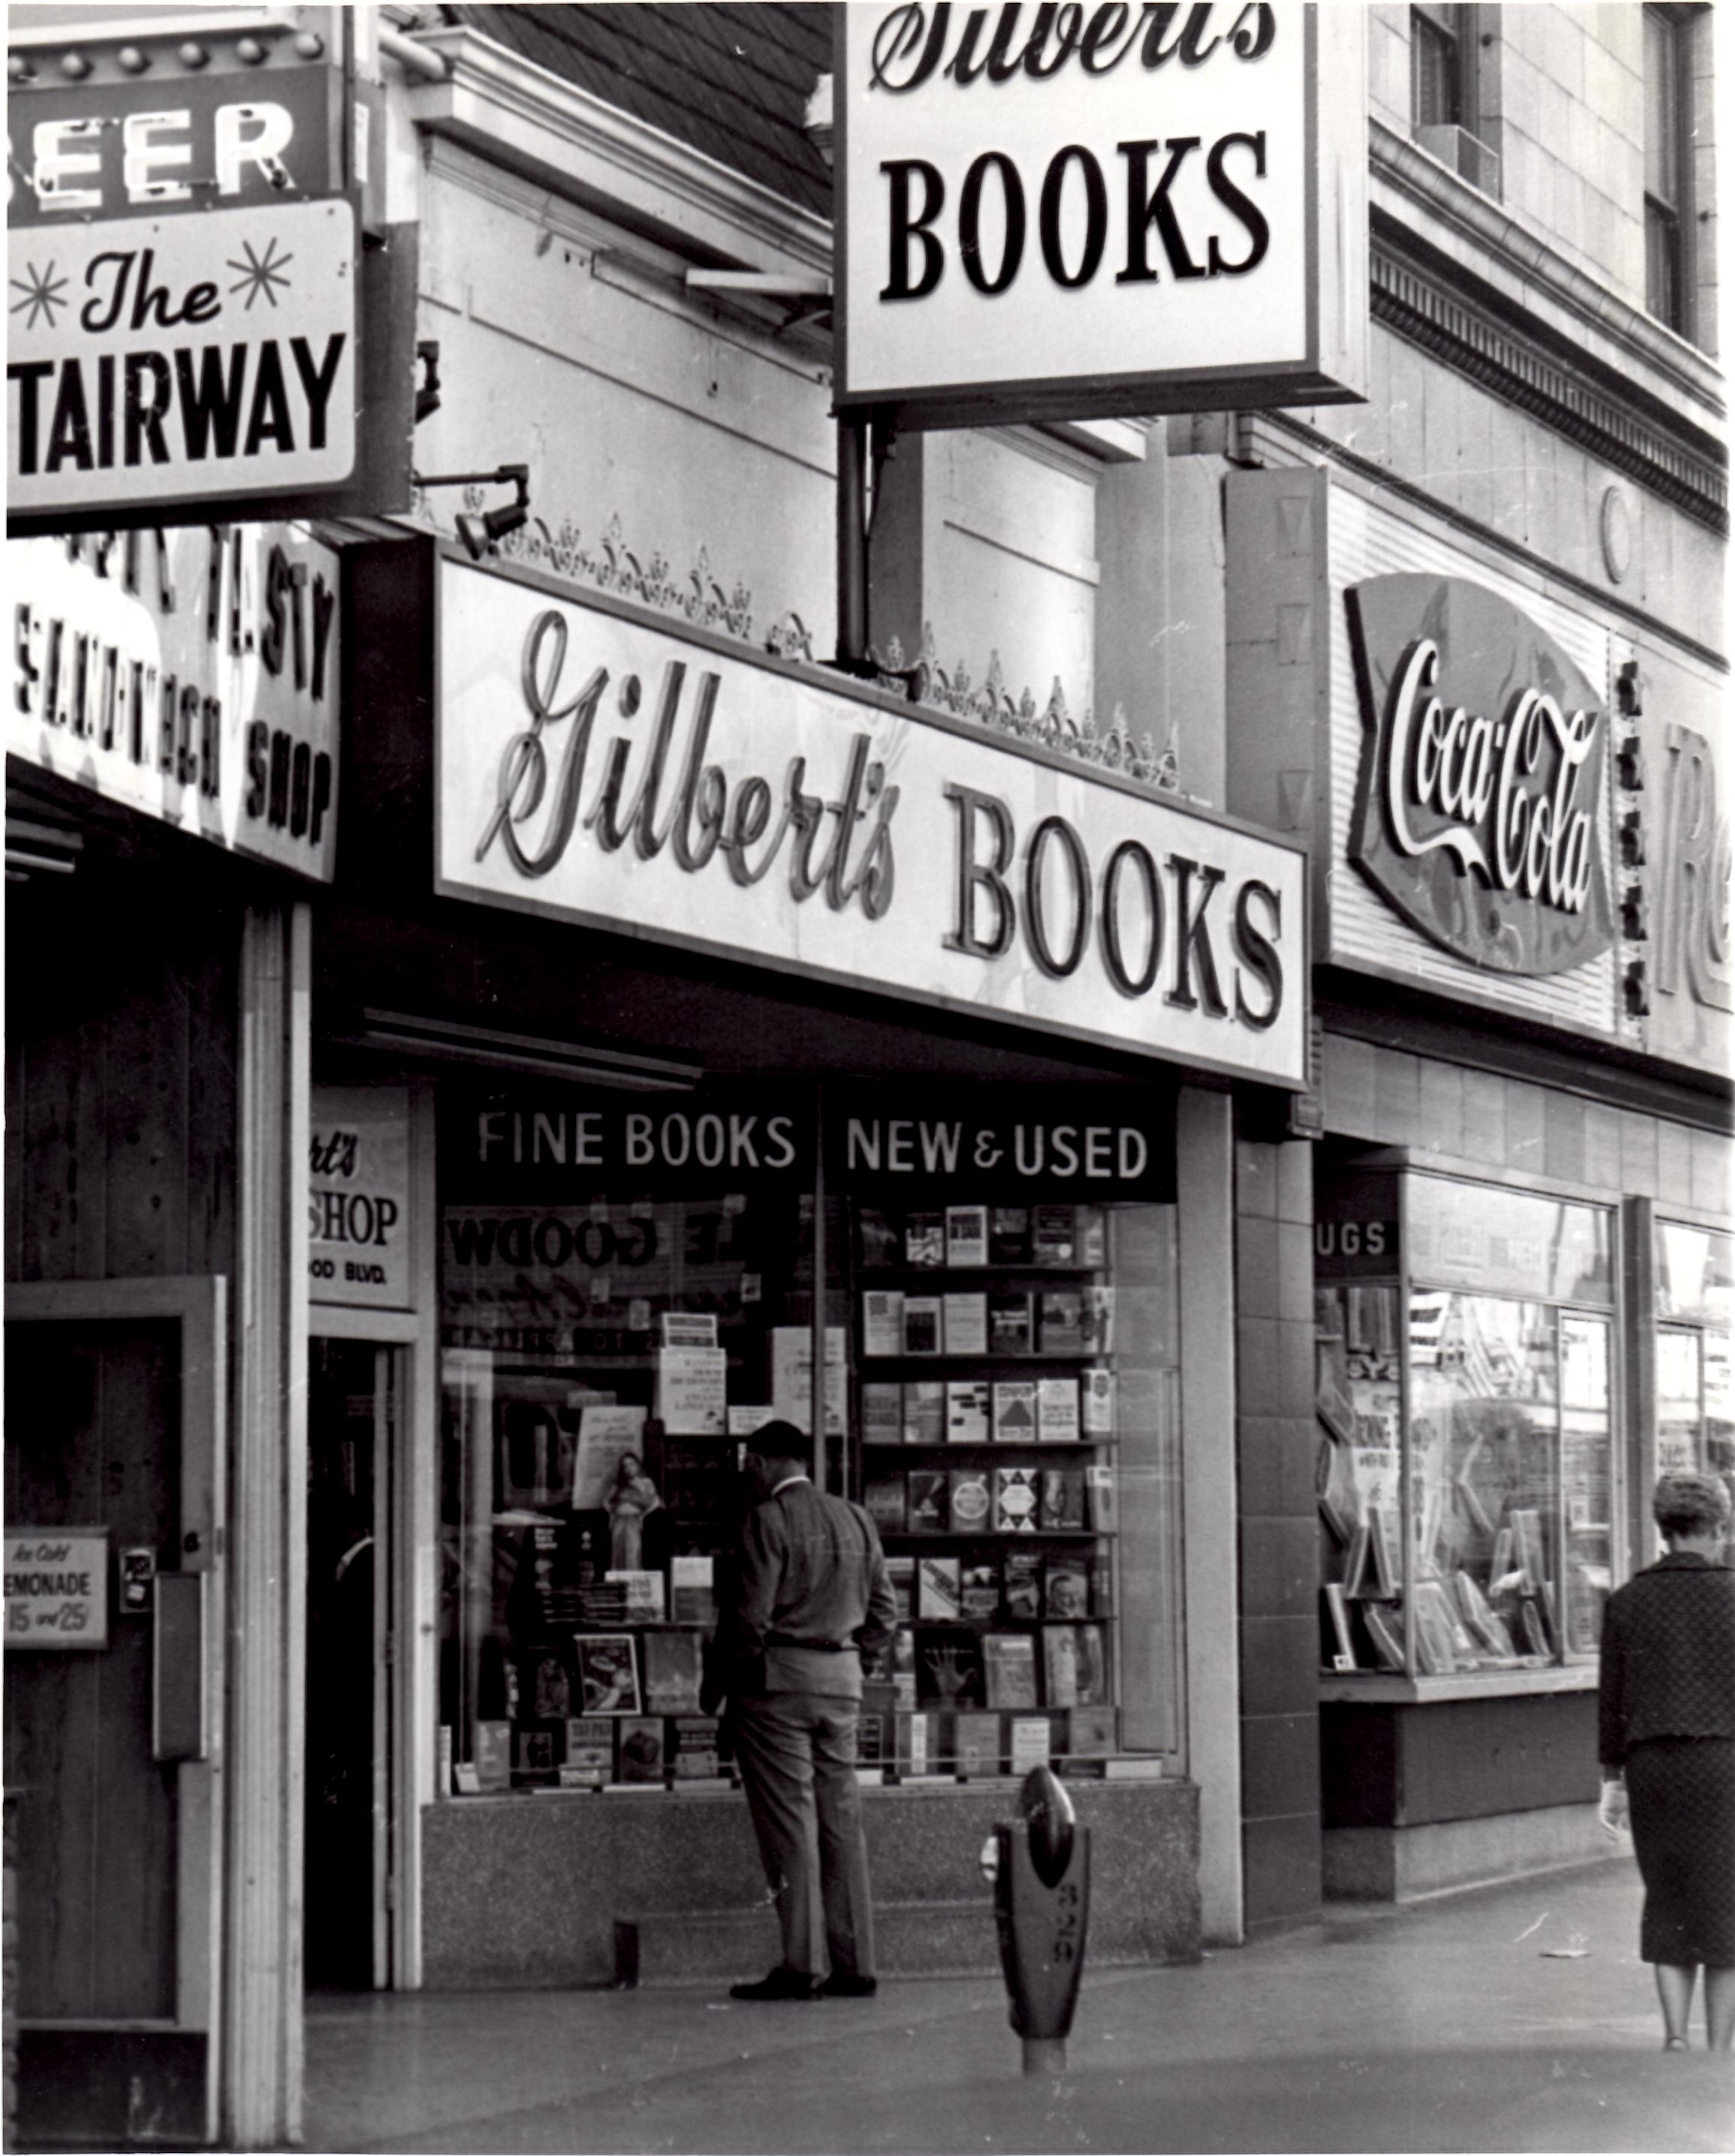 Gilberts Book Shop. Photo by Wayne Braby